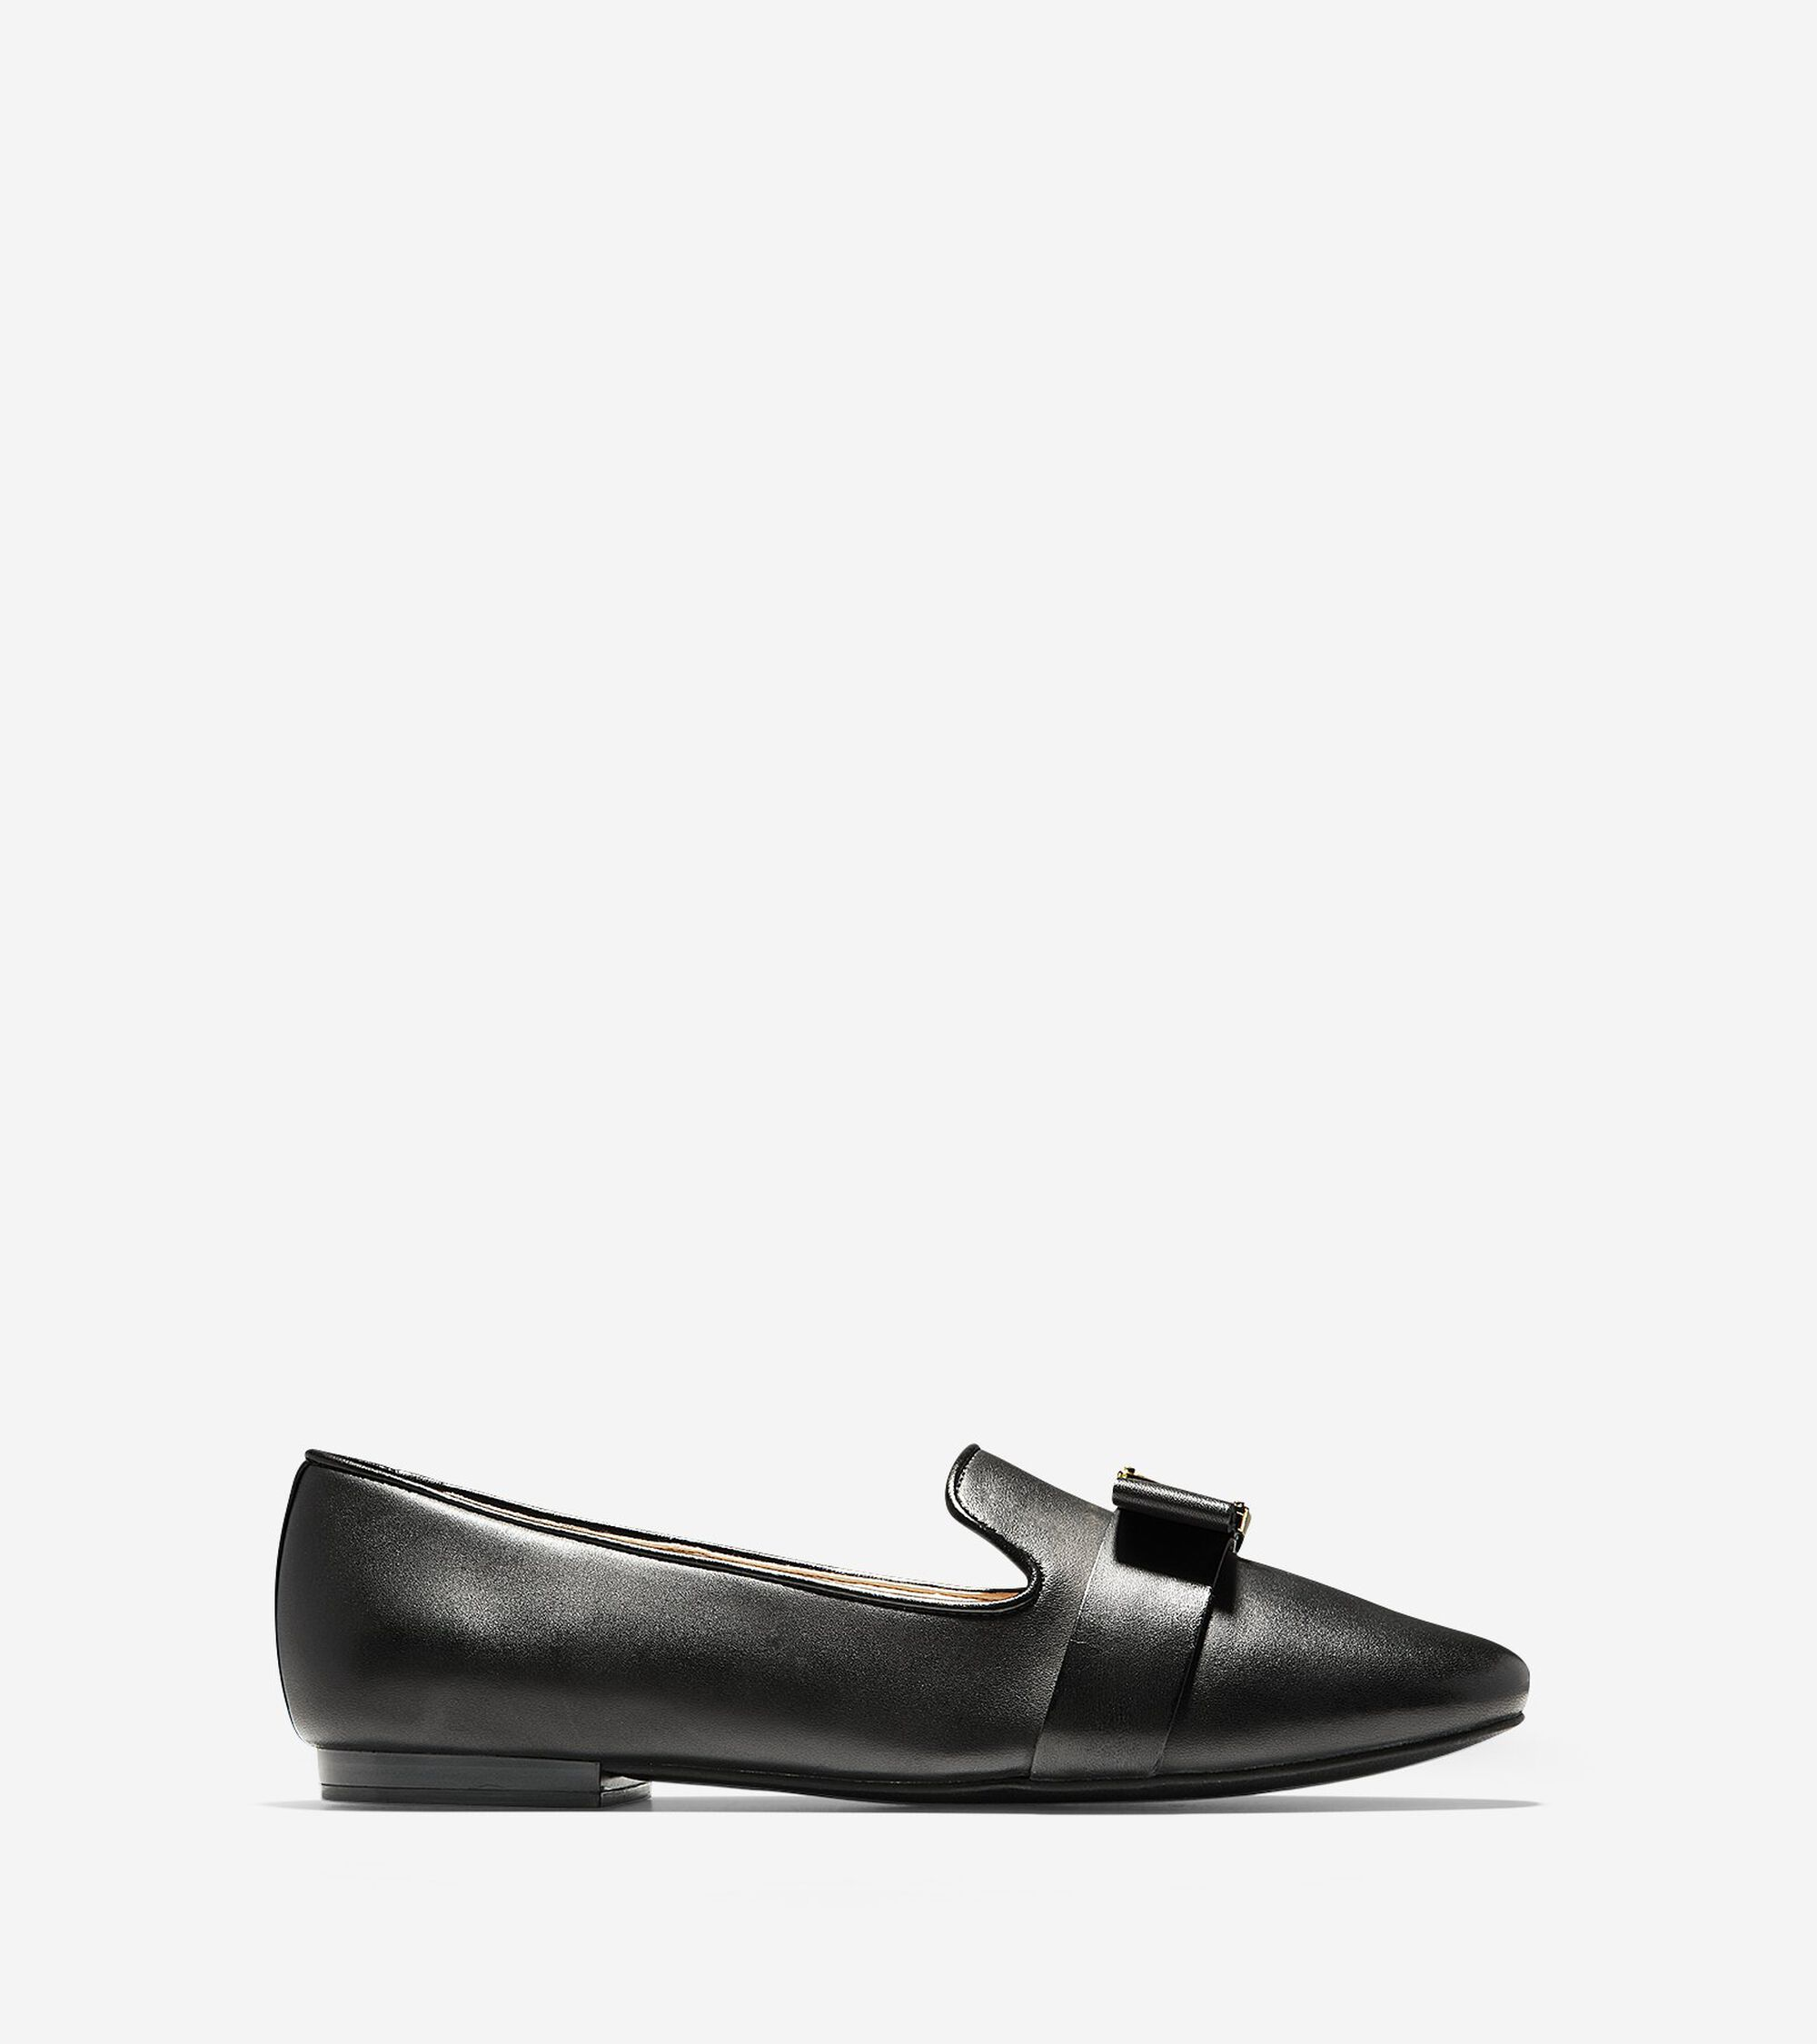 Cole Haan Women's Emory Smoking Loafer